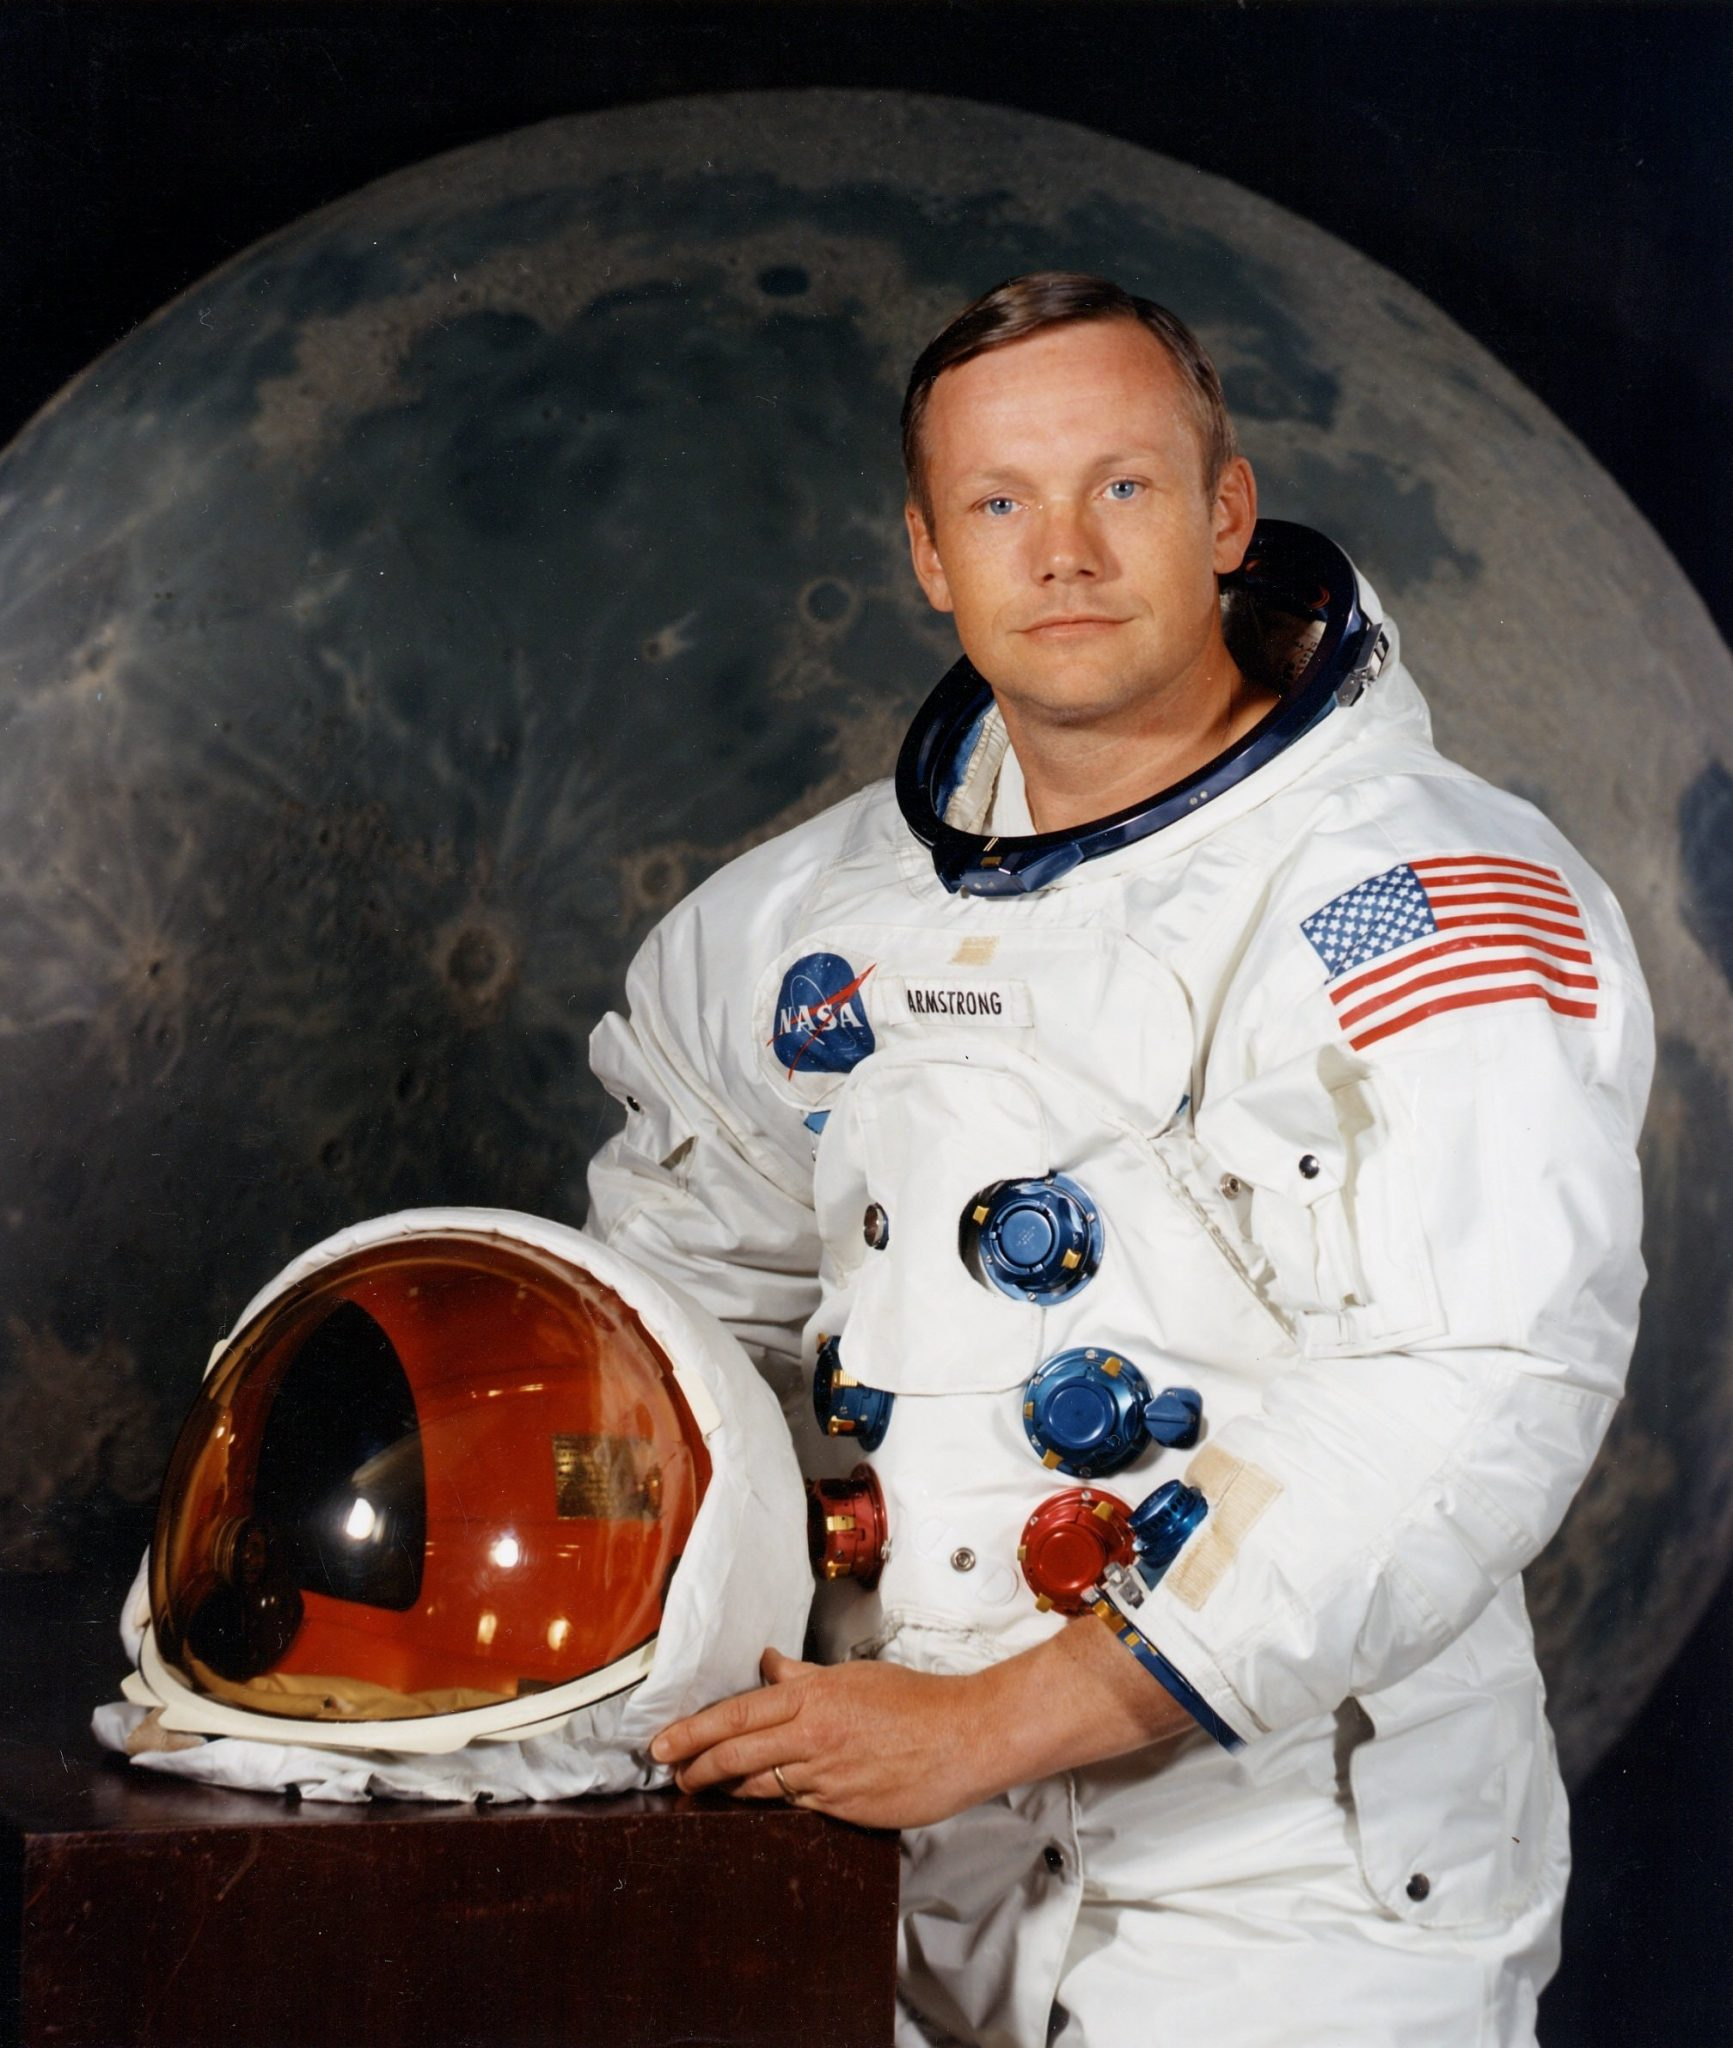 Neil Armstrong posing in front of moon backdrop while in astronaut gear holding helmet